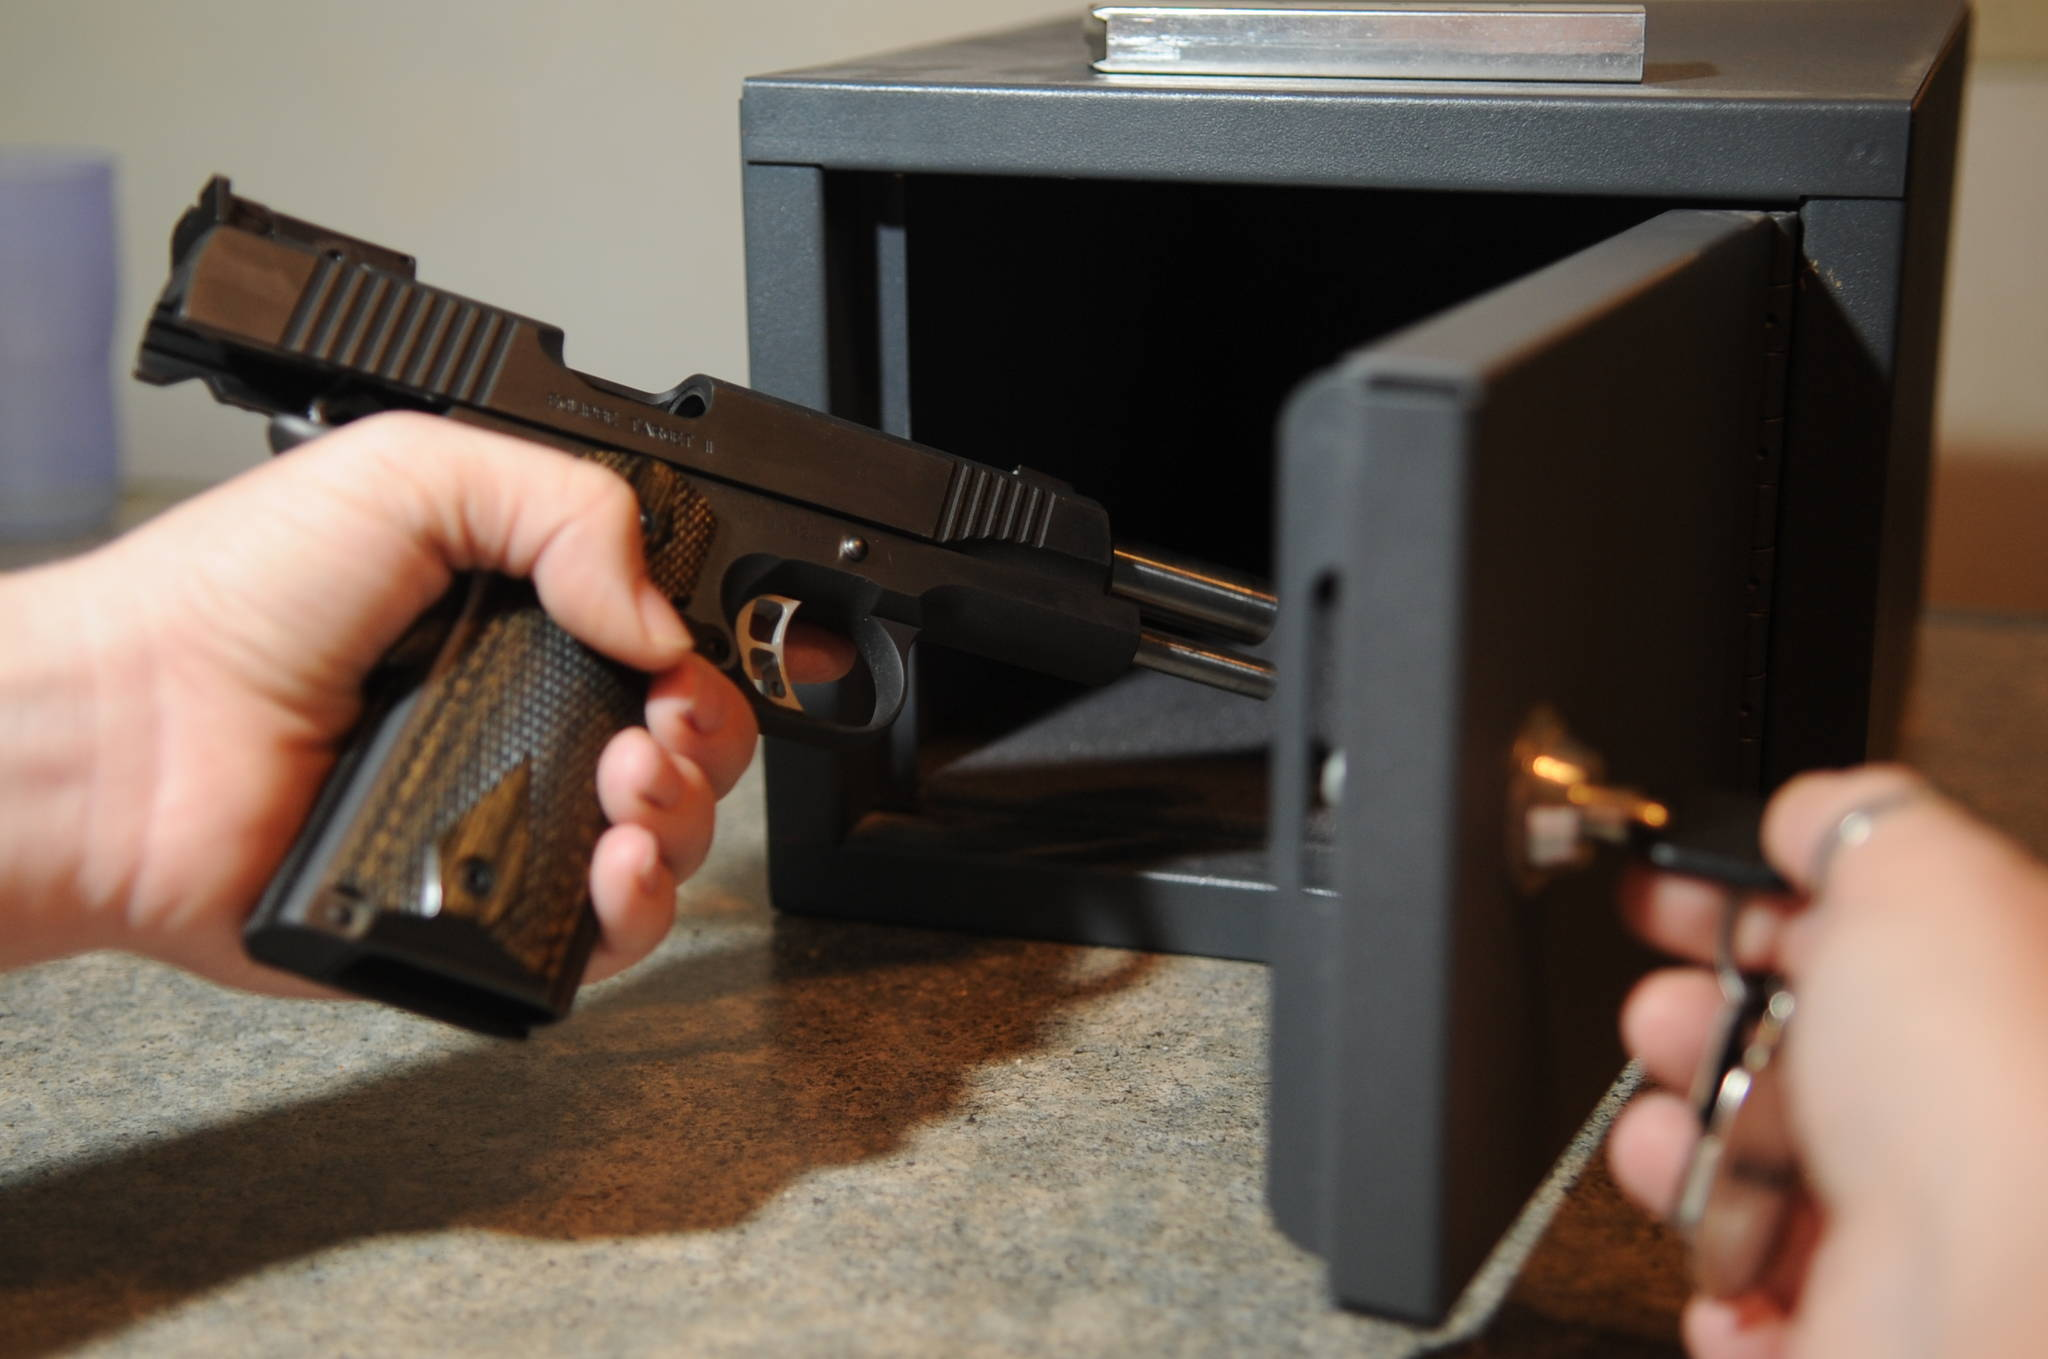 Unloaded firearms should be stored in a lockable gun cabinet, safe or locked vault. (U.S. Air Force Photo/Tech. Sgt. Thomas Dow)